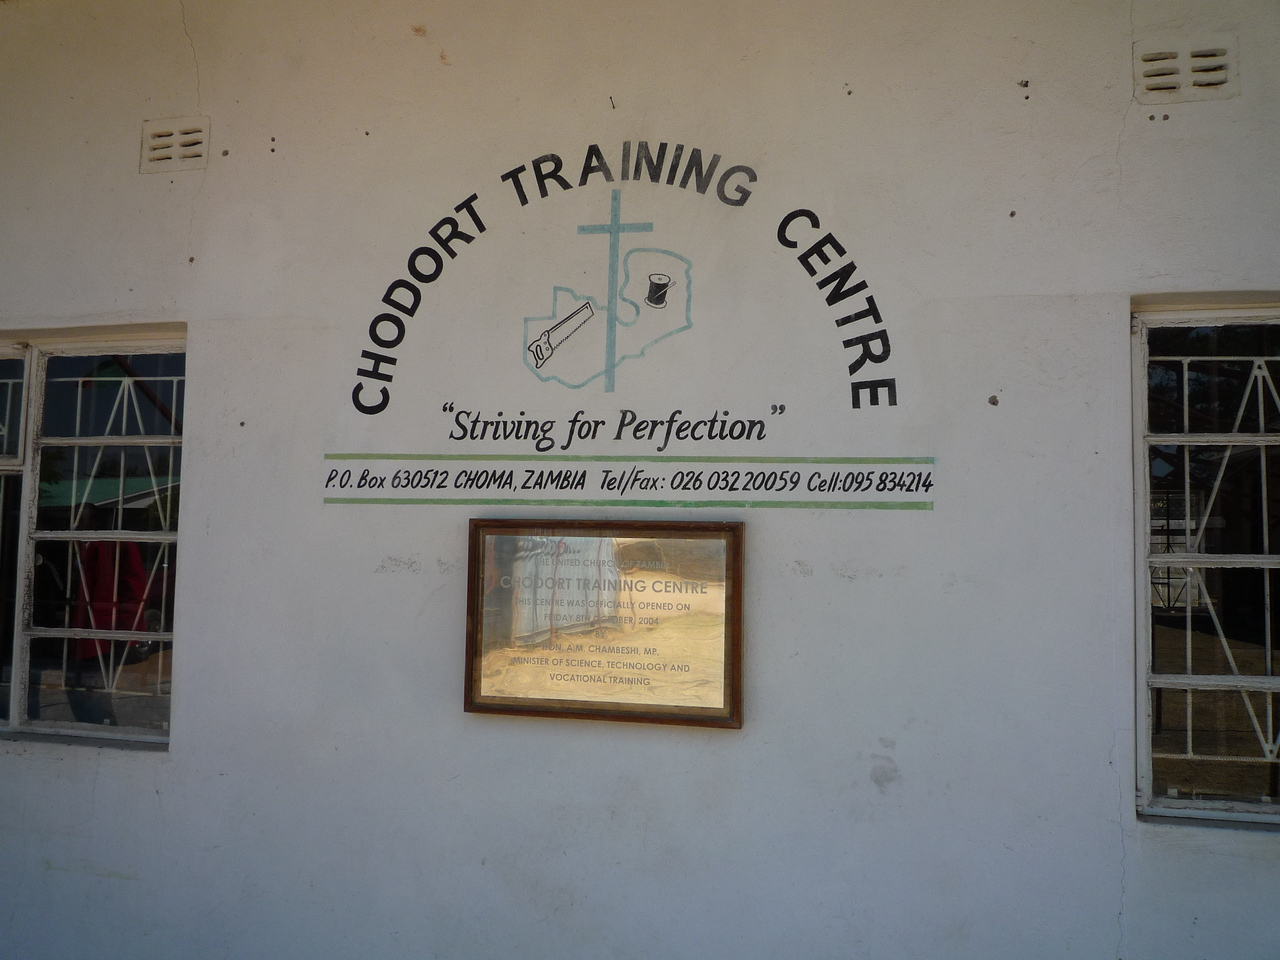 Chodort training centre